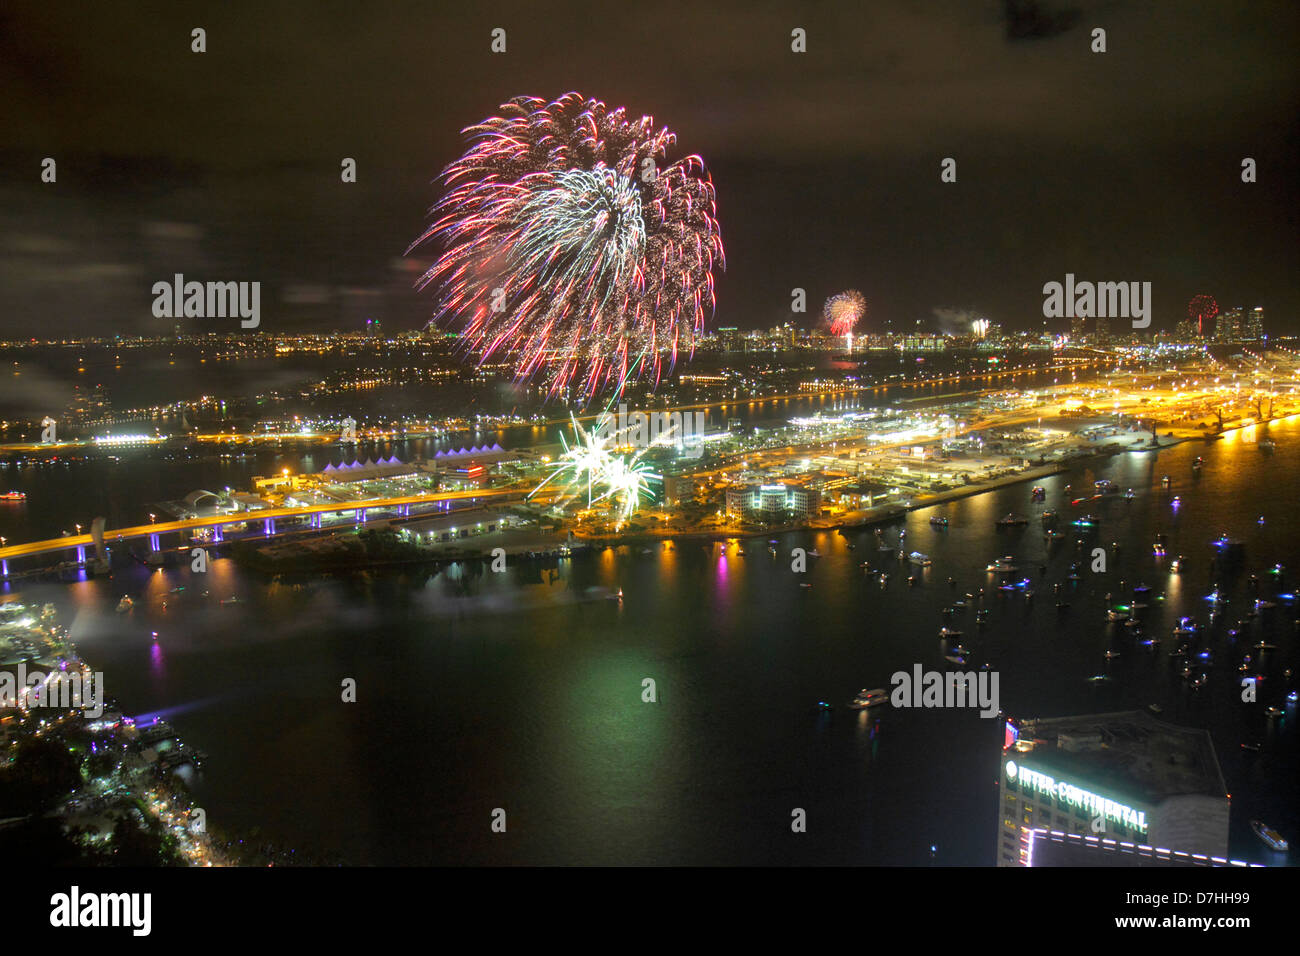 Miami Florida New Year s Eve fireworks celebration Port Boulevard     Miami Florida New Year s Eve fireworks celebration Port Boulevard Bridge  aerial view from Southeast Financial Center centre skyl